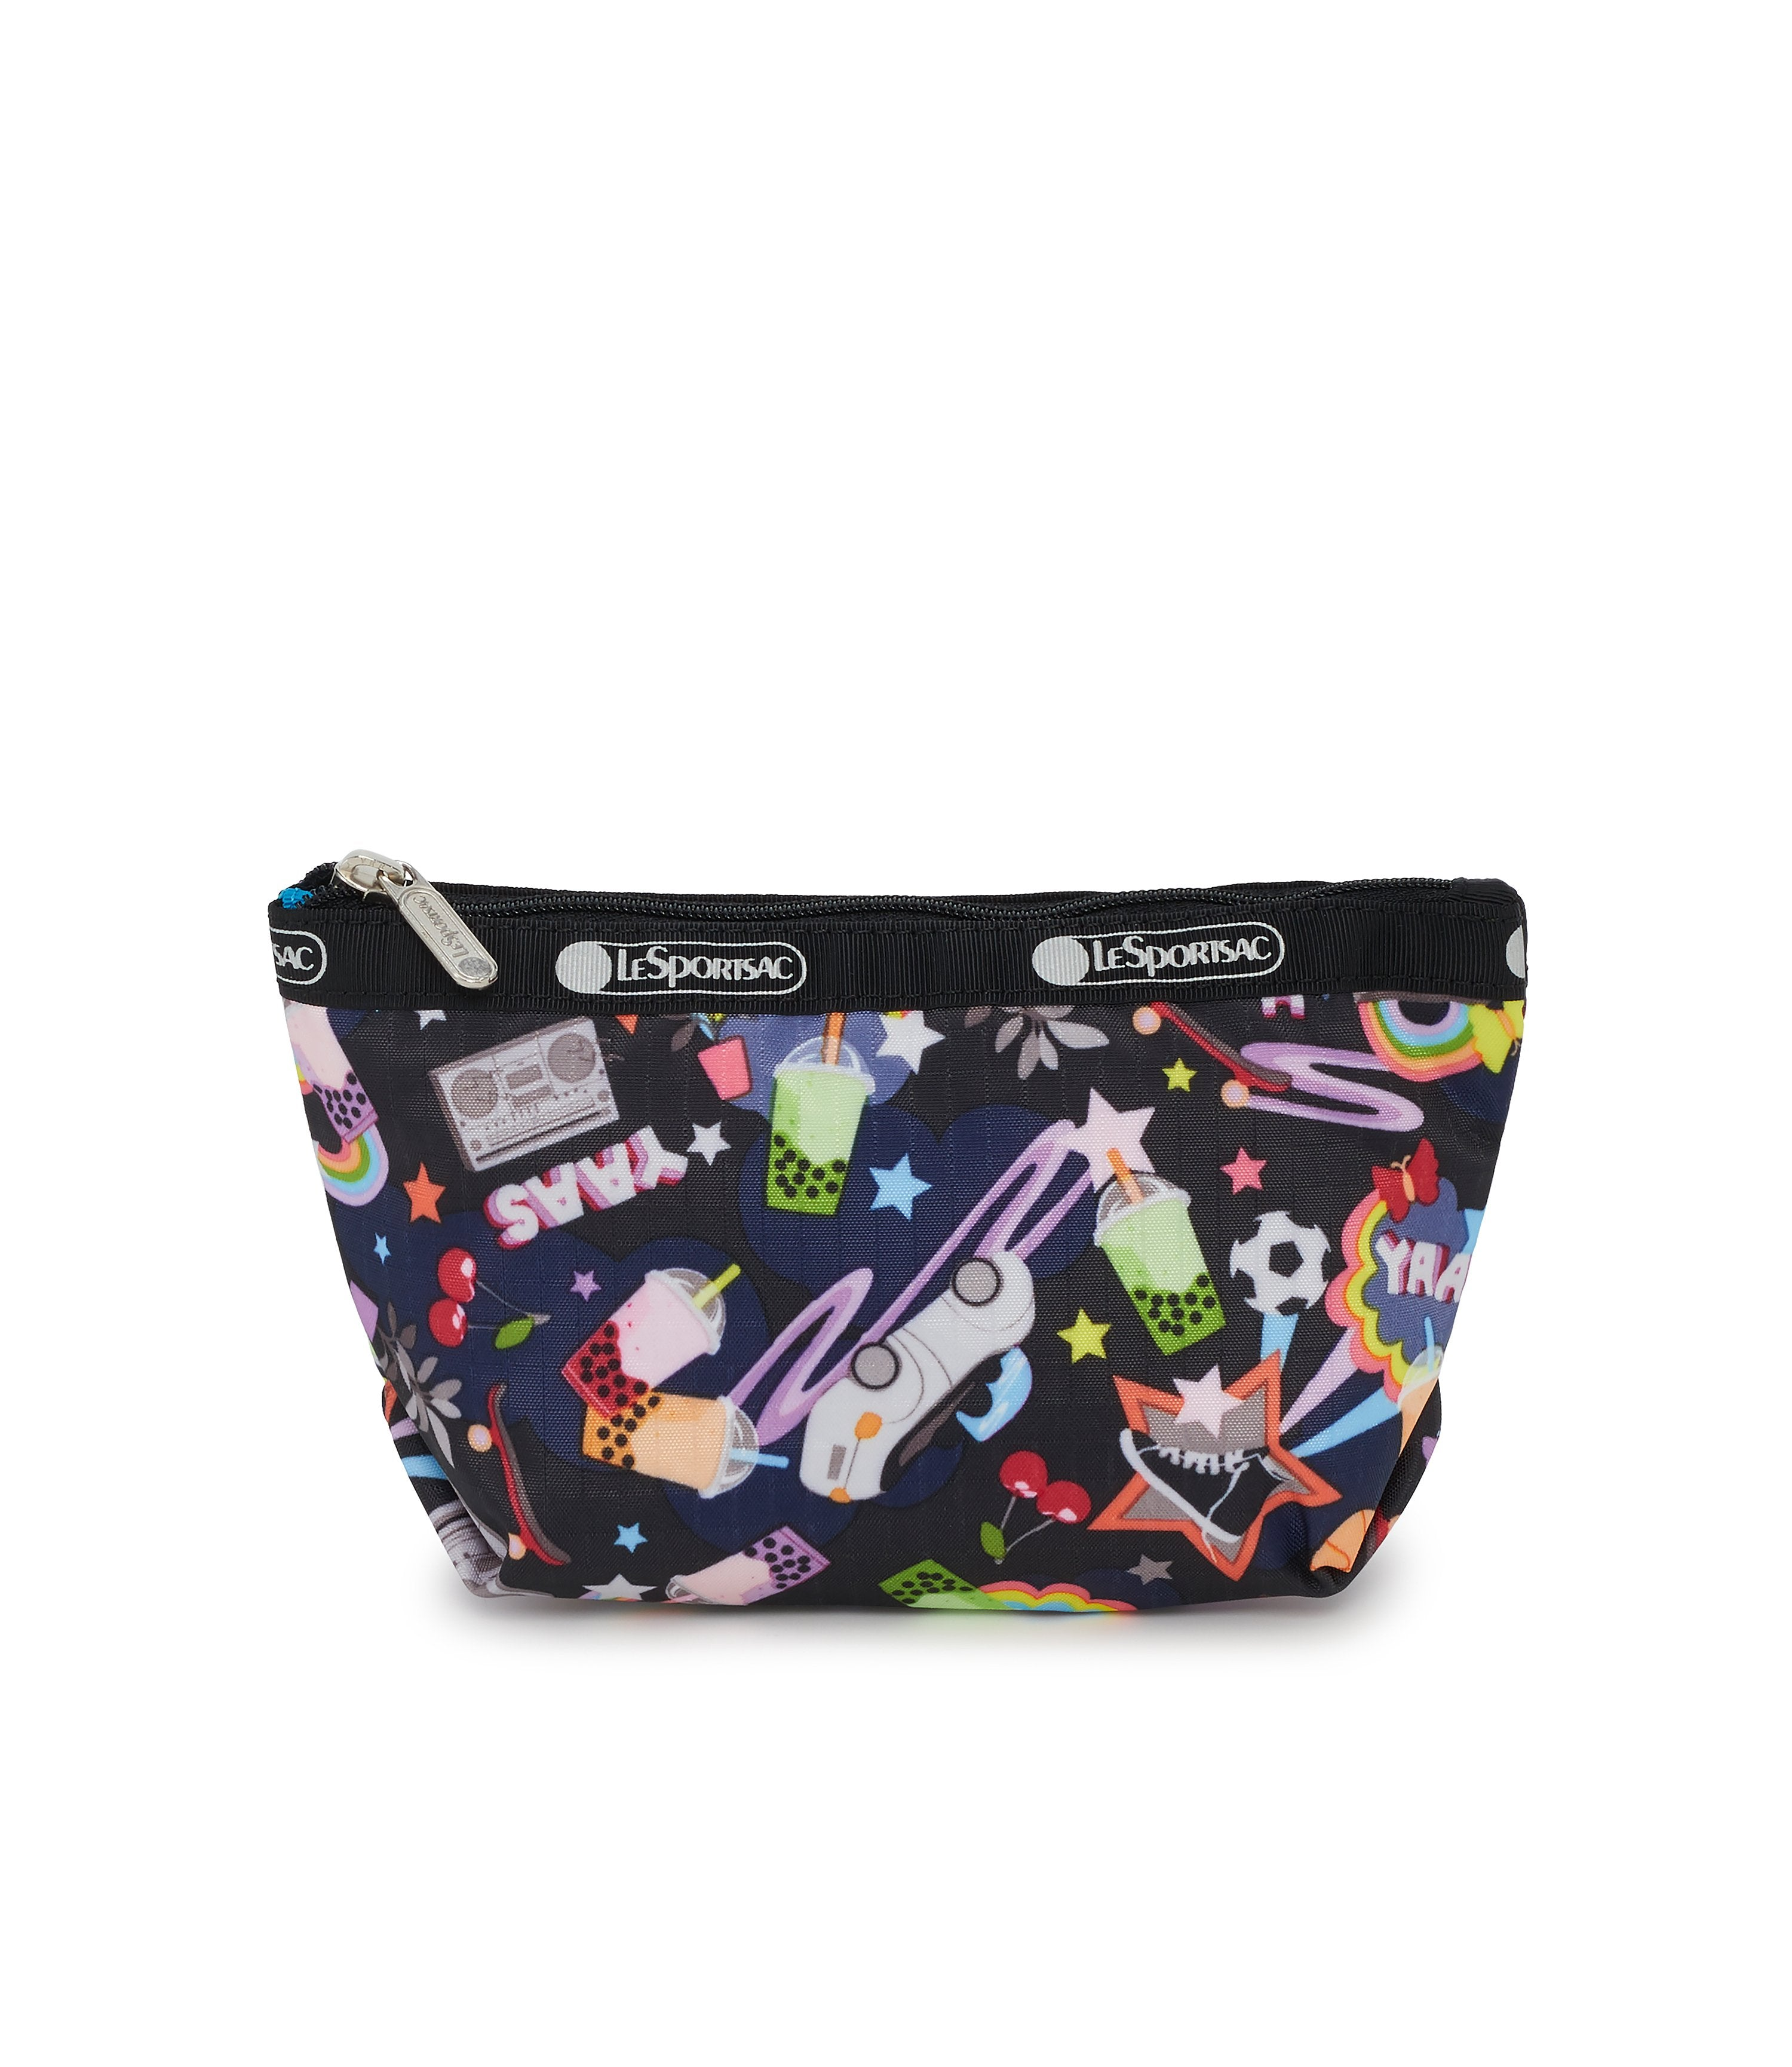 Small Sloan Cosmetic, Accessories and Cosmetic Bag, LeSportsac, Yaas print